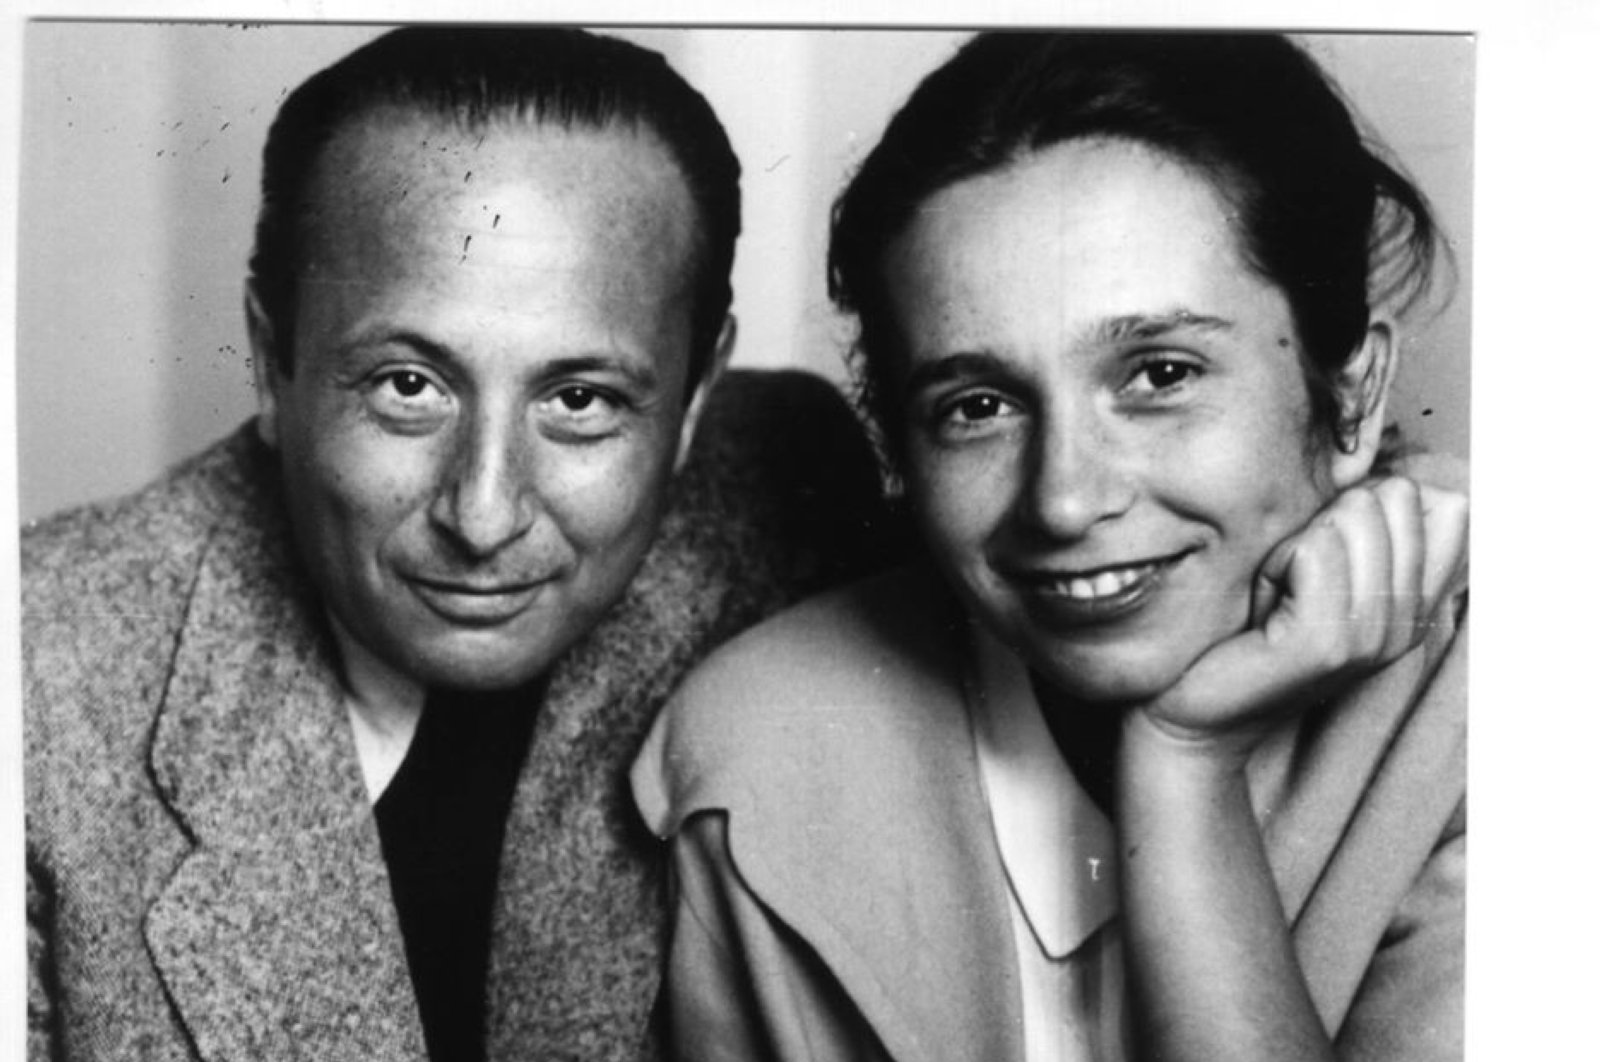 Pianist Wladyslaw Szpilman (L) and his wife Halina Szpilman are seen in this photo provided on June 3, 2020. (IHA Photo)